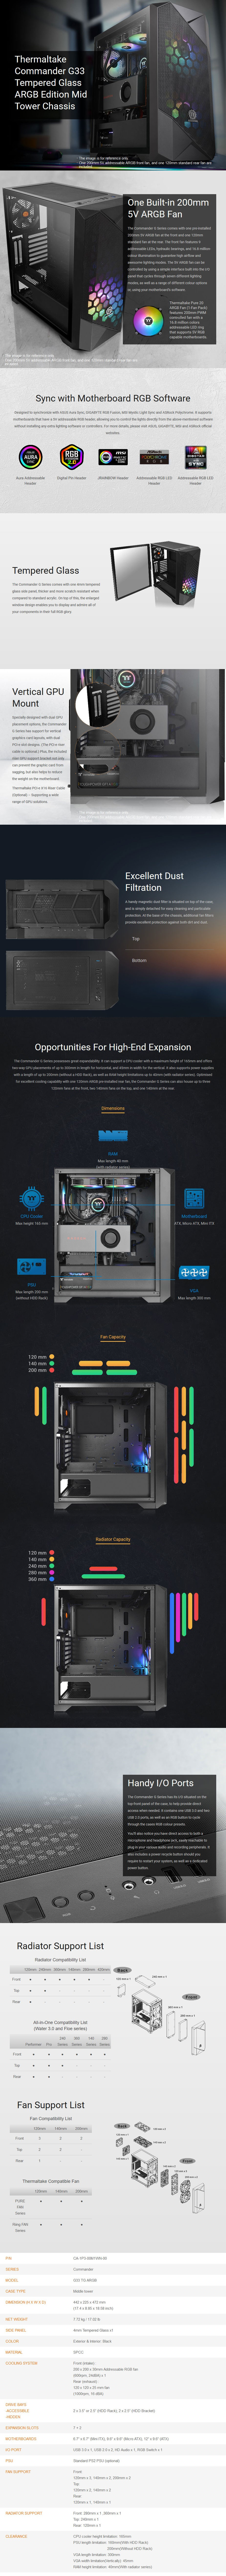 thermaltake-commander-g33-tempered-glass-argb-midtower-atx-case-ac31930.jpg